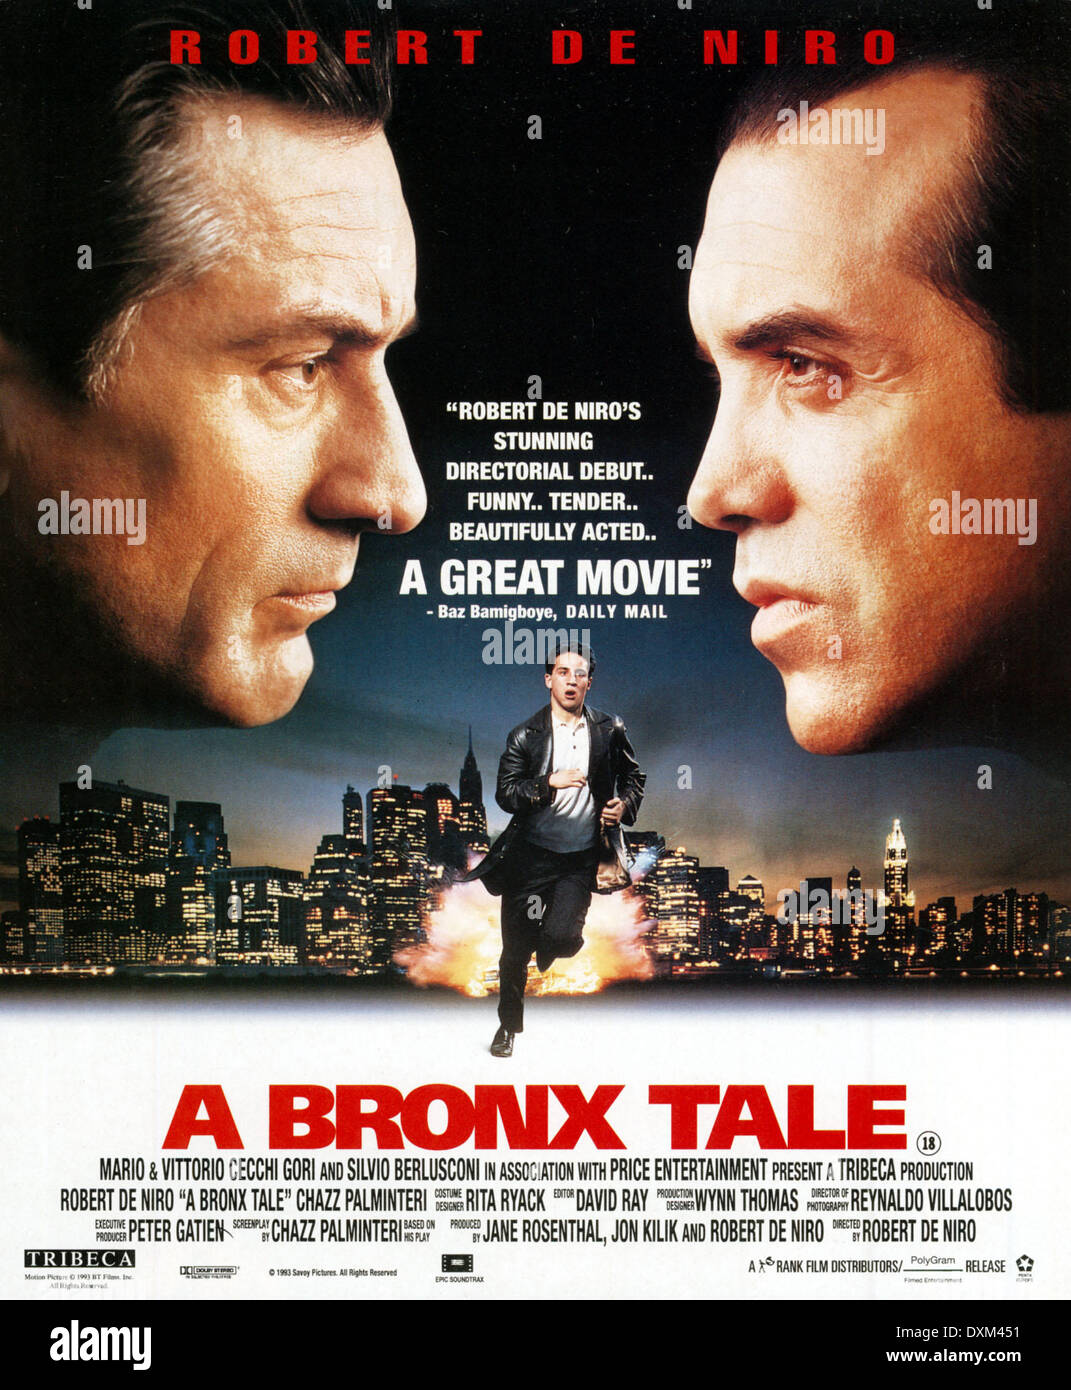 sociological view on the bronx tale The idea of sociological mindfulness is to be aware of all the aspects of what we say and do and be able to  view my complete  a bronx tale: groups.